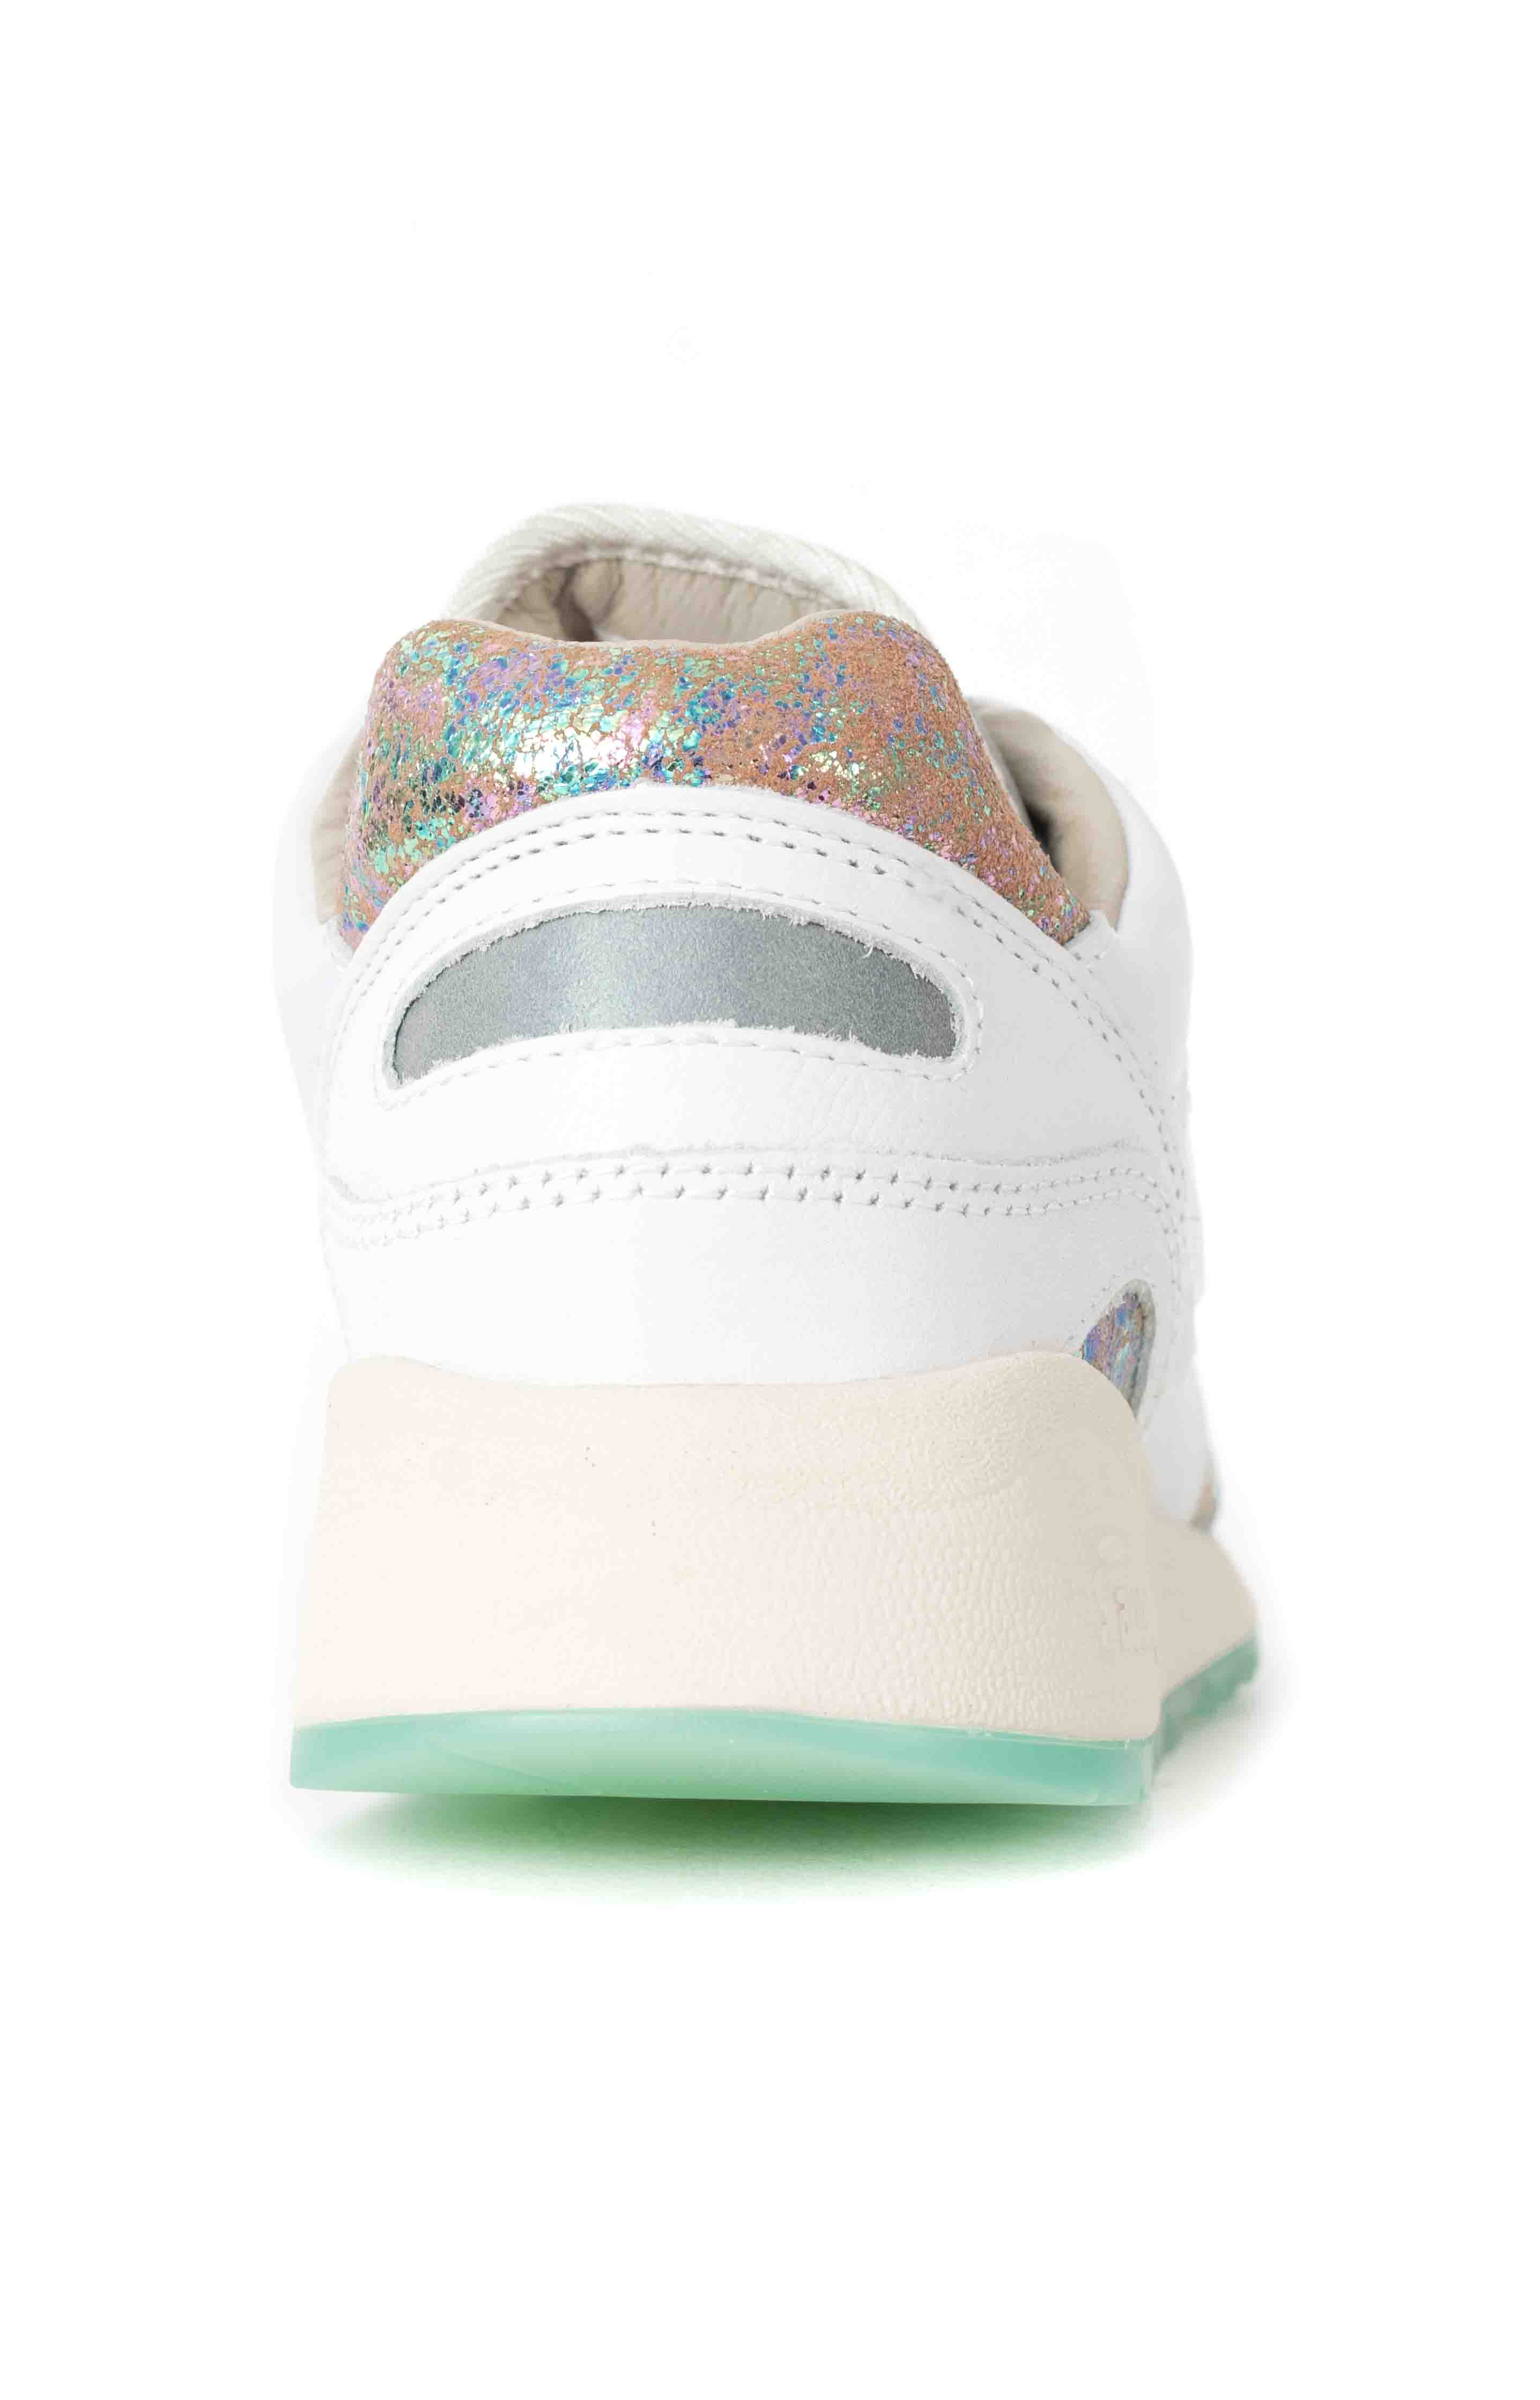 (S70594-1) Shadow 6000 Shoes - Pearl 5